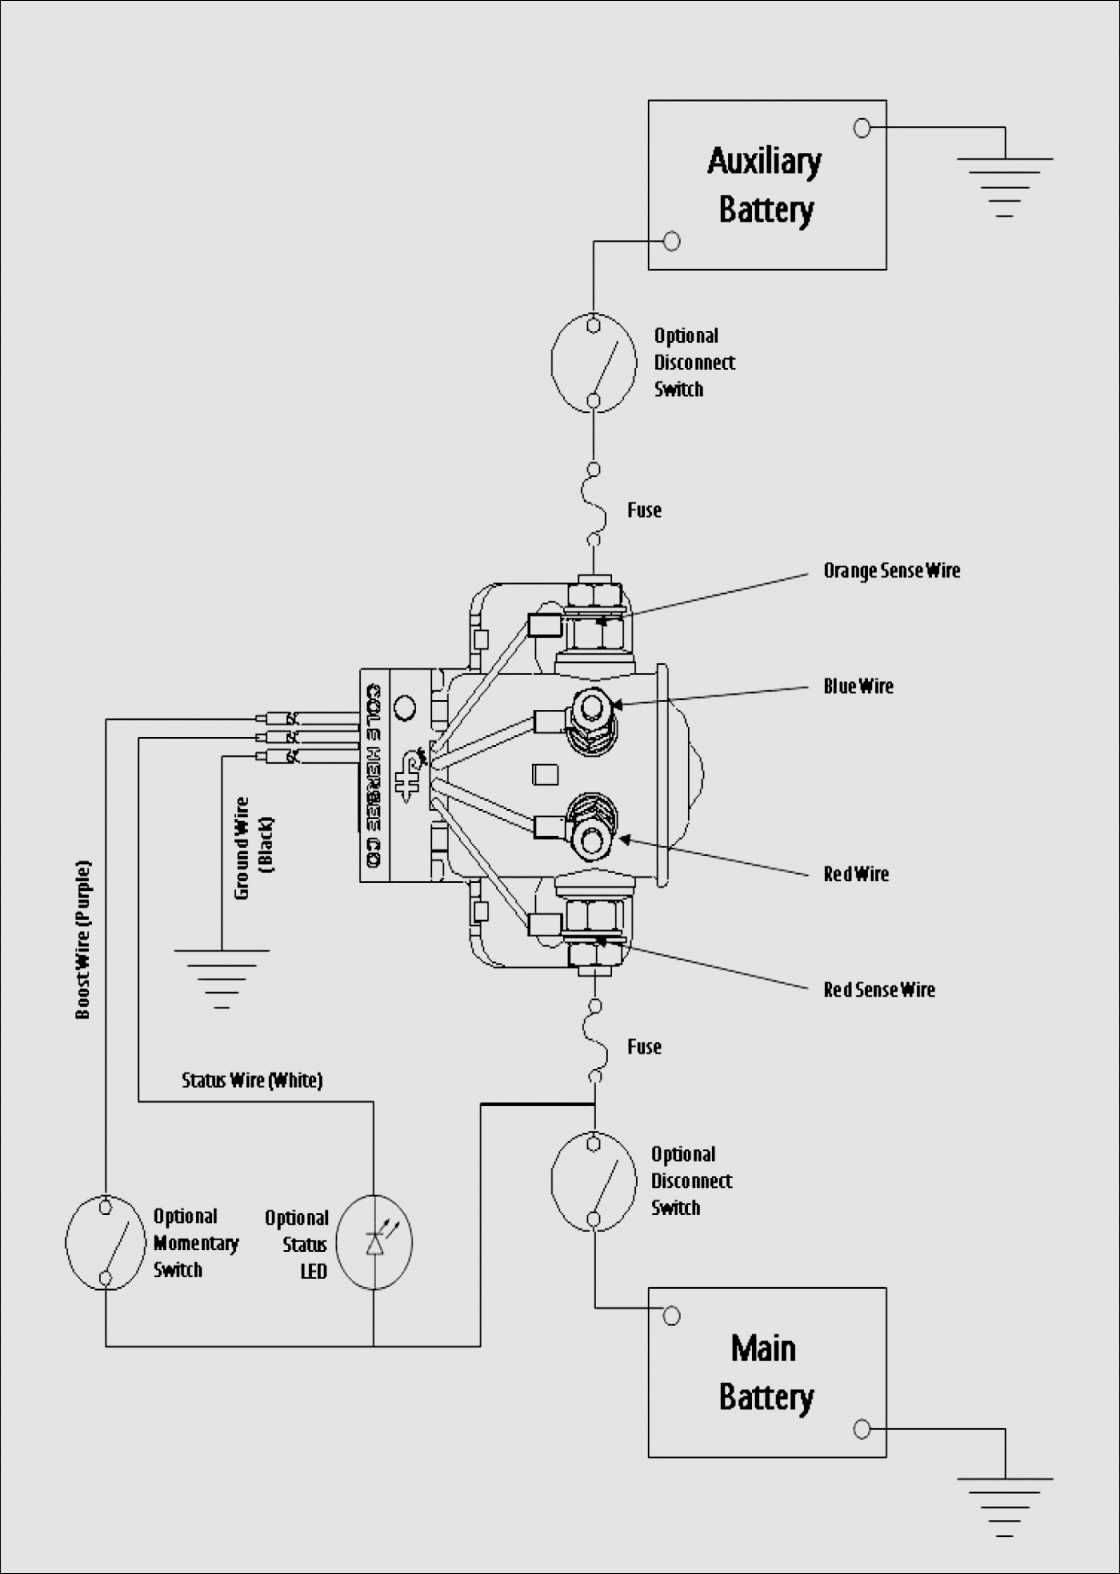 Viking Pop Up Camper Wiring Diagram | Wiring Diagram - Viking Trailer Wiring Diagram